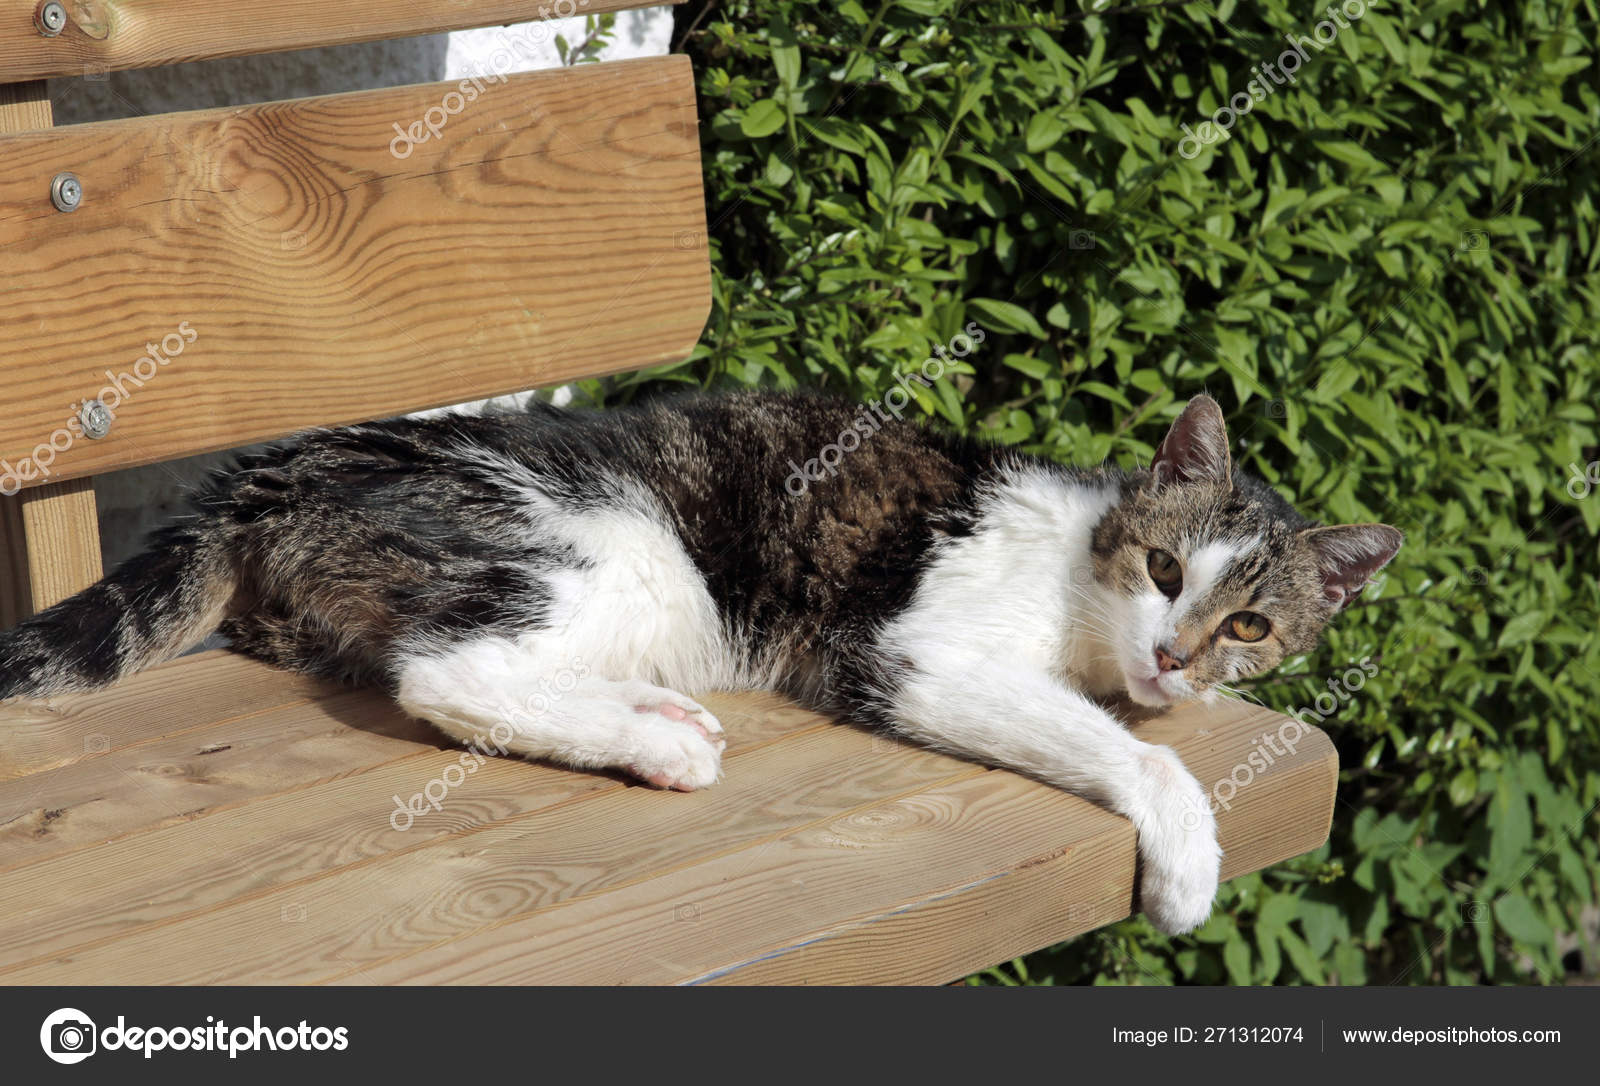 Miraculous Sleeping Domestic Cat Garden Bench Stock Photo C Worldnews Inzonedesignstudio Interior Chair Design Inzonedesignstudiocom